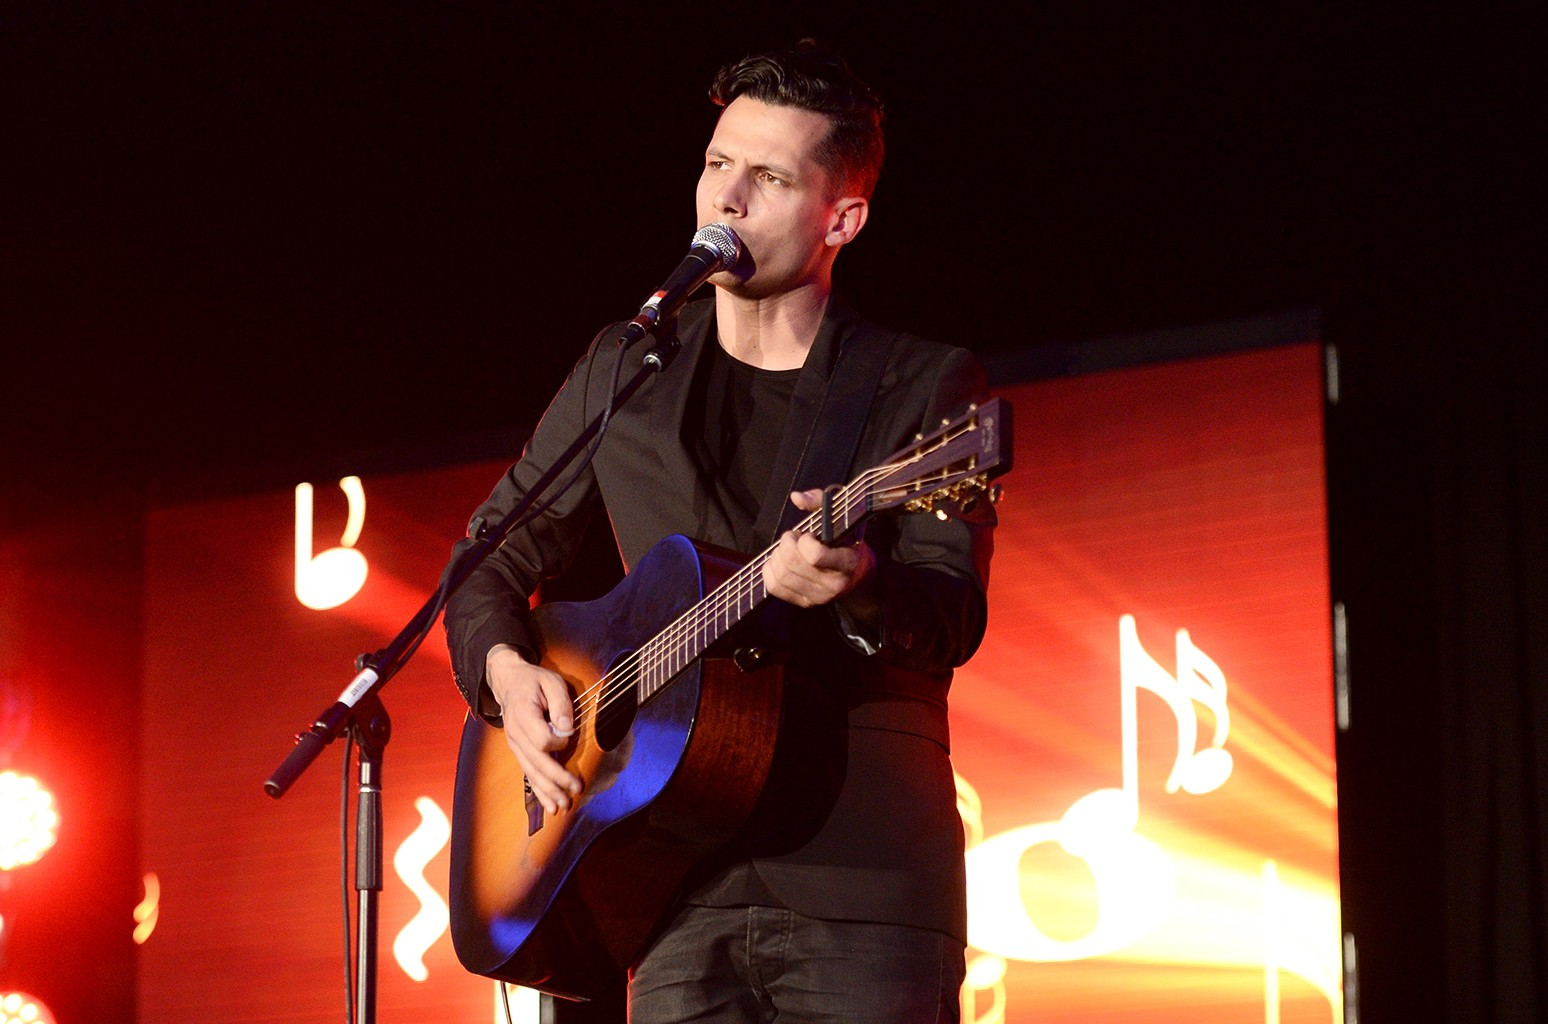 Devin Dawson performs during the National Music Publishers' Association Annual Meeting at Marriott Marquis Times Square on June 8, 2016 in New York City.